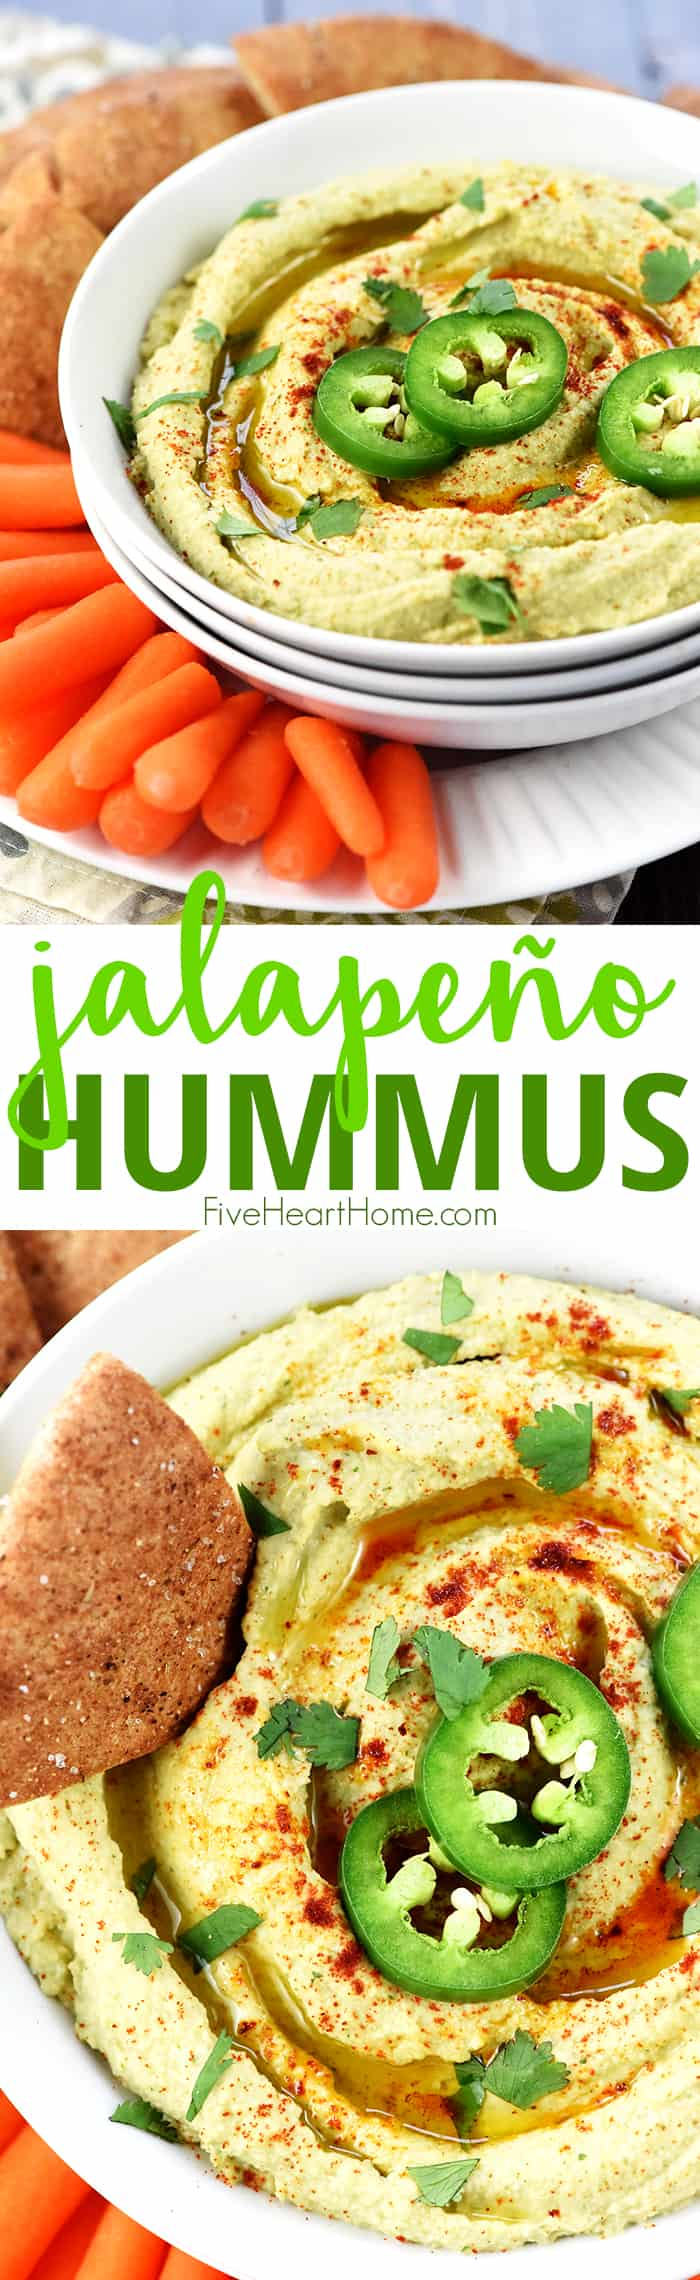 Jalapeño Hummus ~ classic hummus gets a zippy kick in this healthy, flavorful, quick and easy dip for pita wedges or your favorite raw veggies! | FiveHeartHome.com